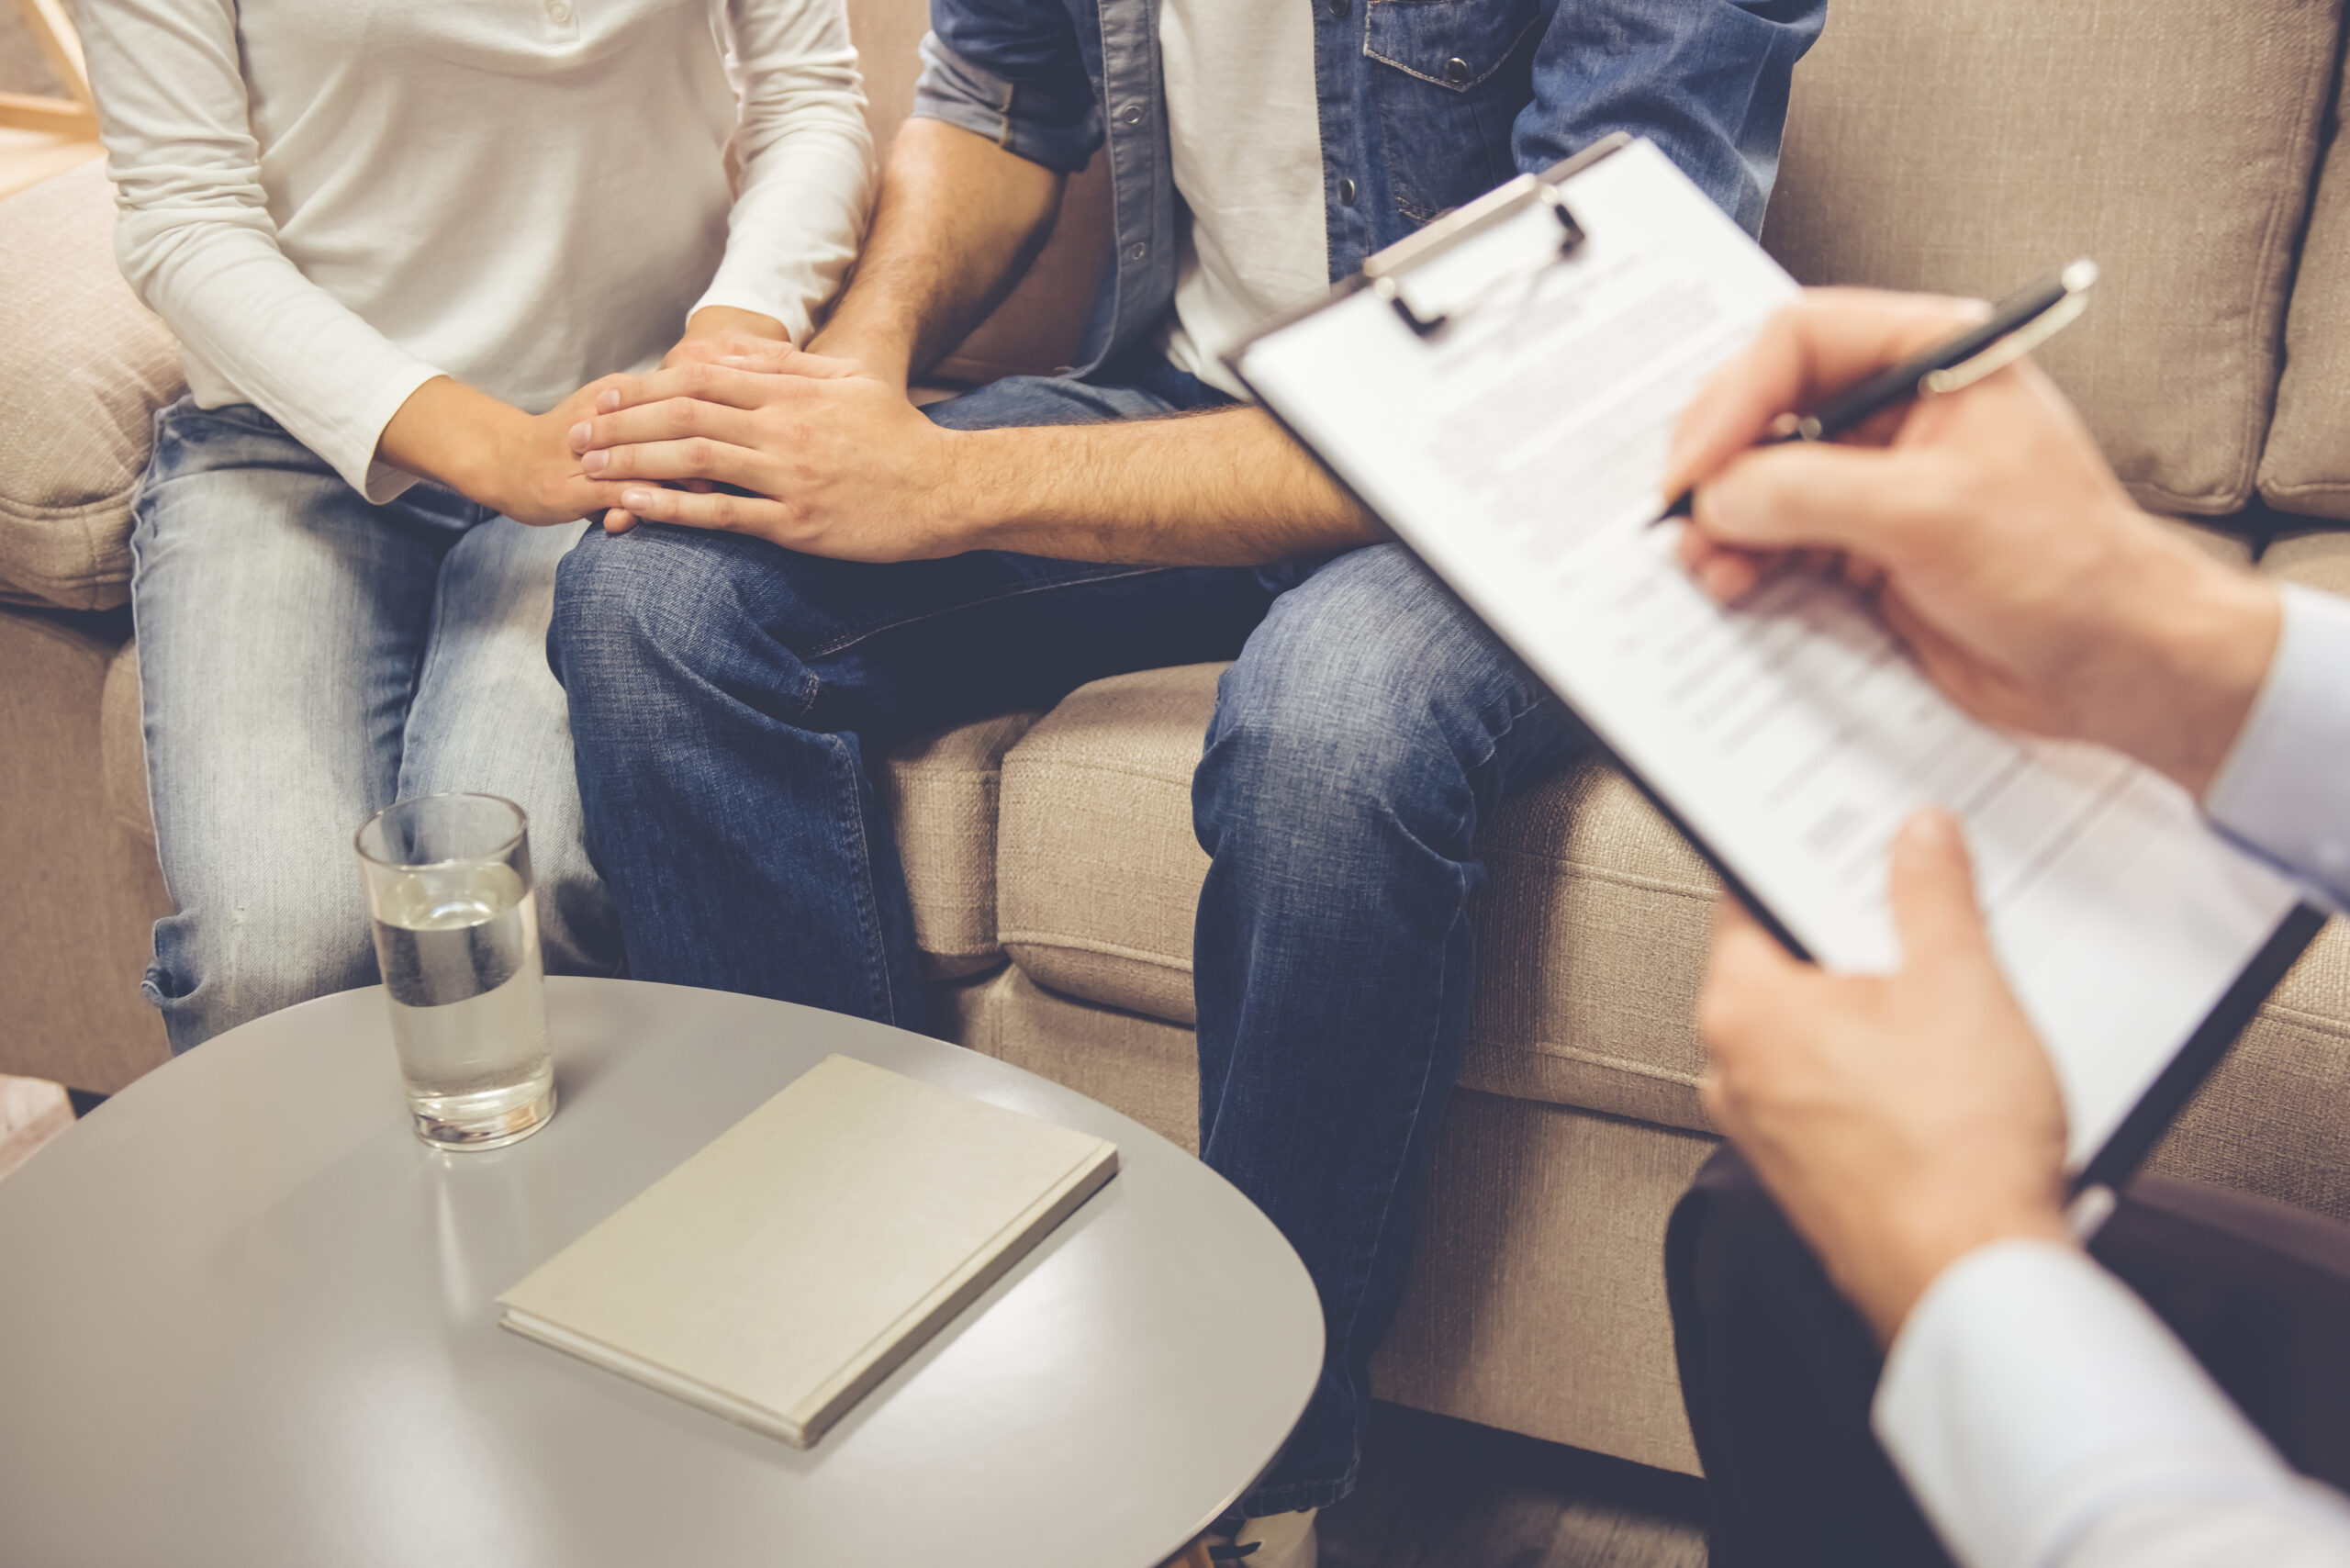 At the psychologist. Cropped image of beautiful young couple sitting on couch and holding hands while doctor is making notes